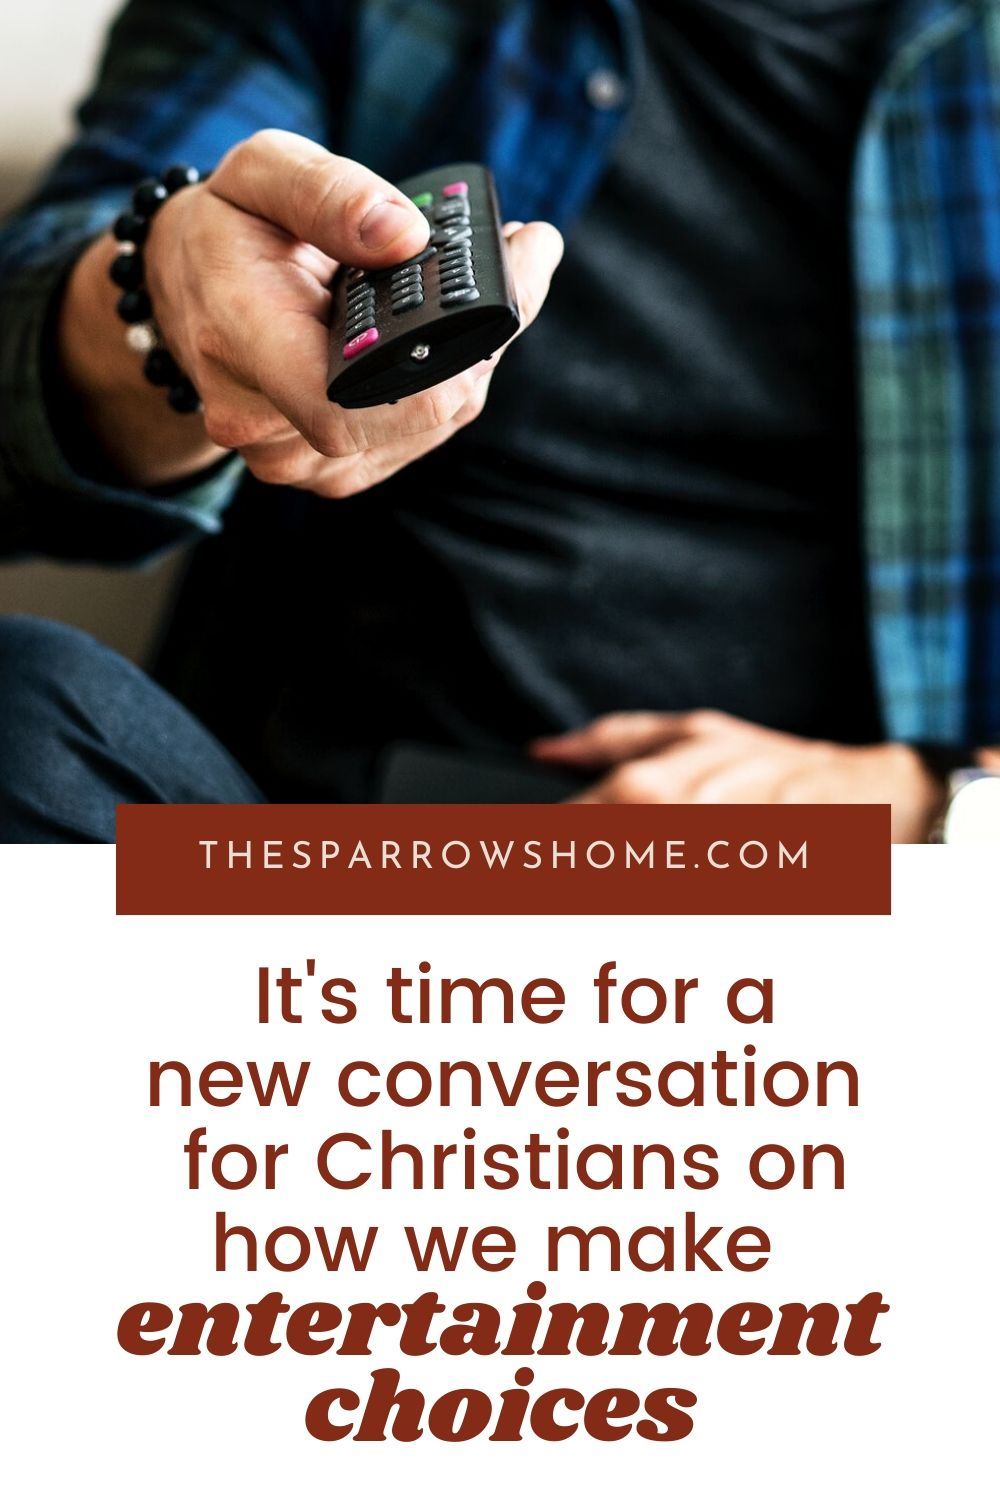 A new perspective on how Christians make entertainment choices and engage with the hypersexualized media that pervades our culture.